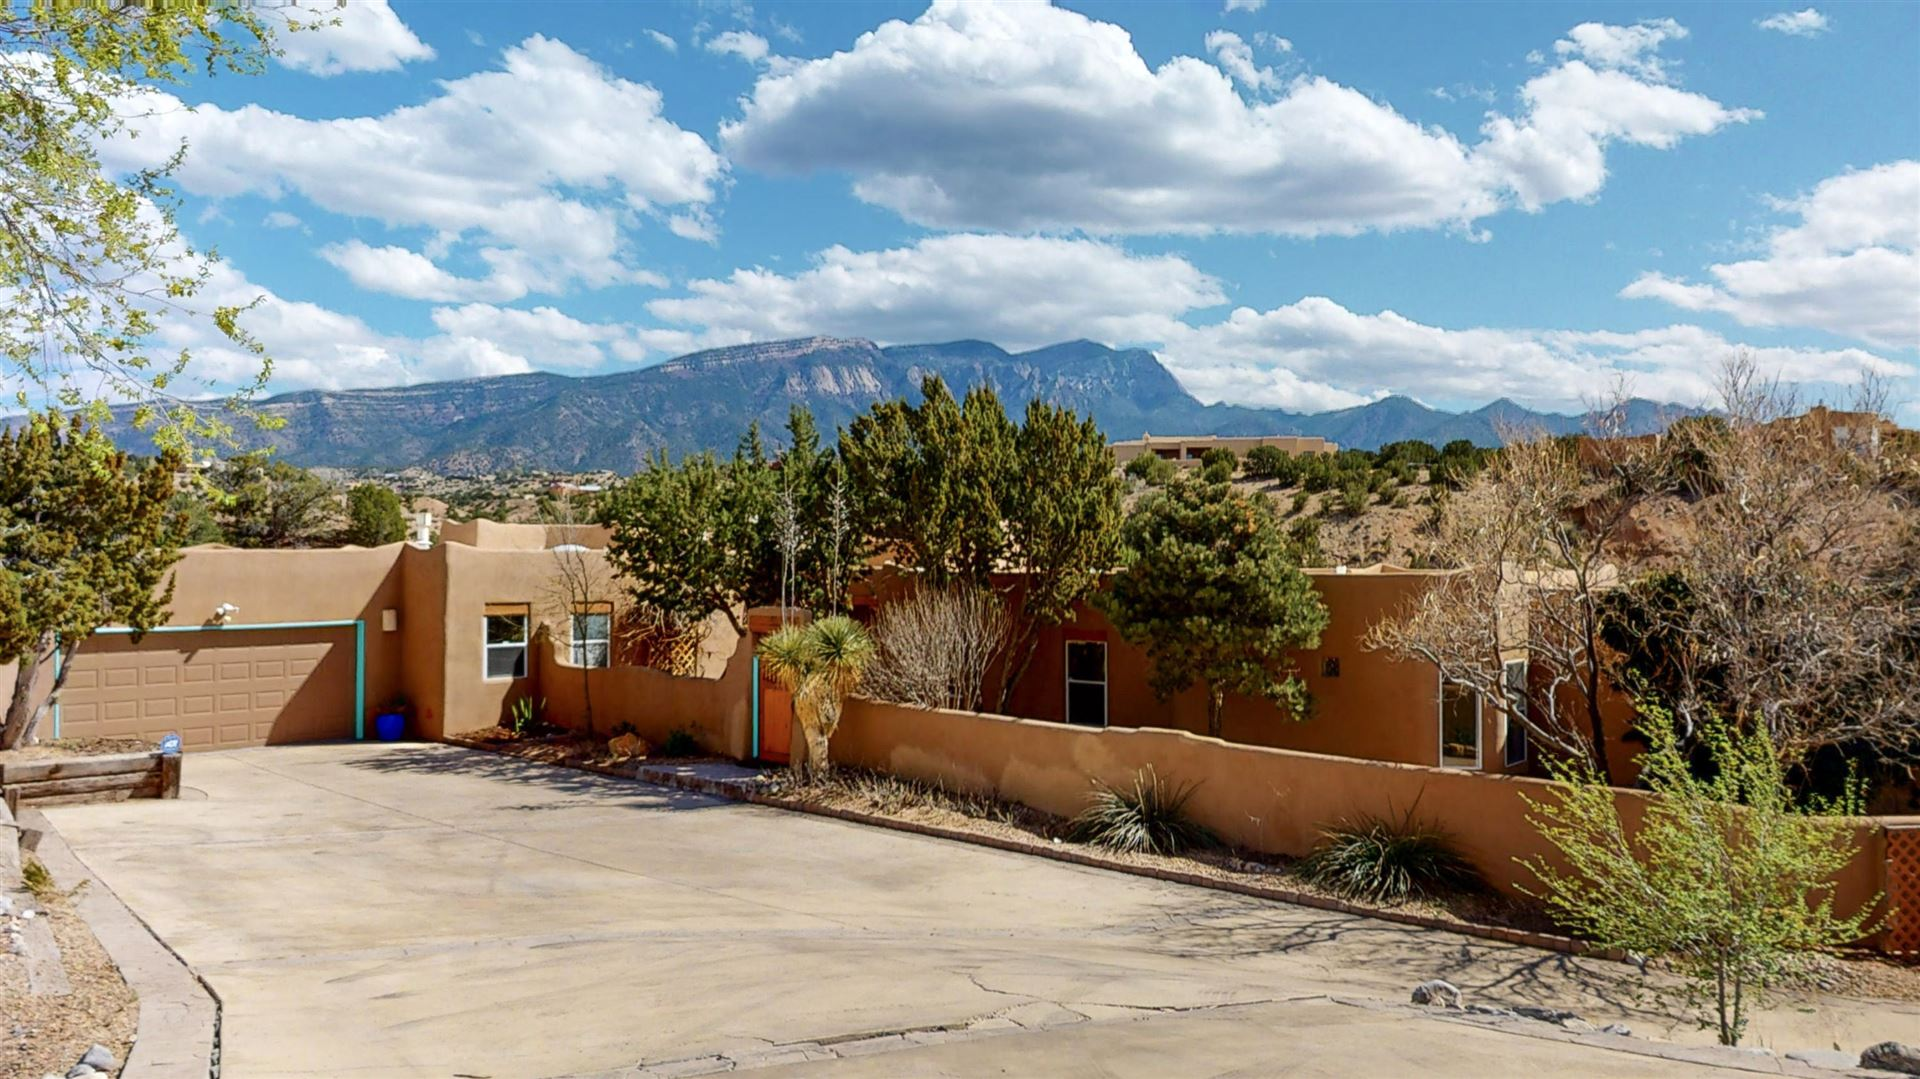 Photo of 38 CAMINO BARRANCA, Placitas, NM 87043 (MLS # 965855)